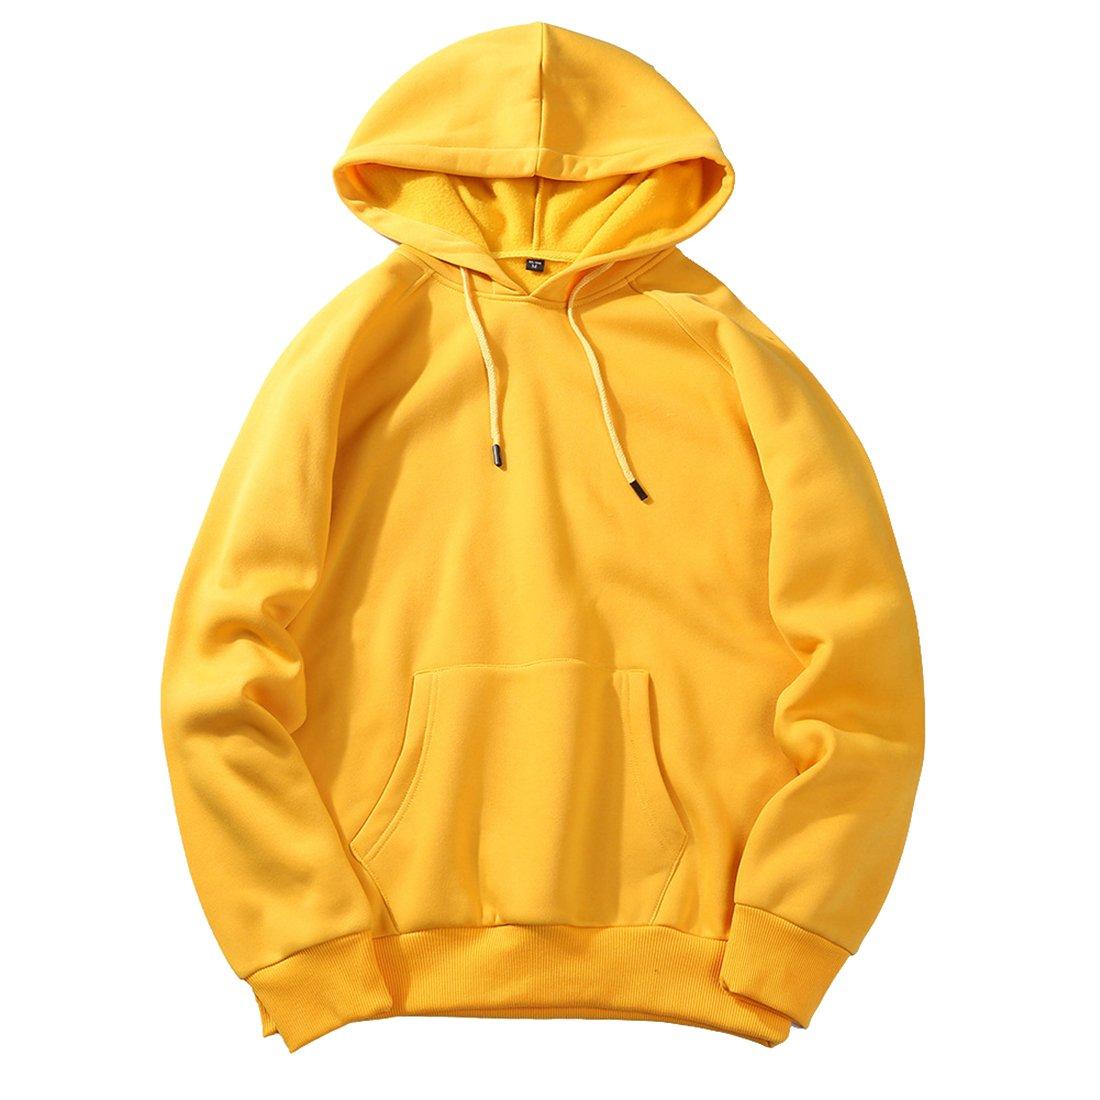 YYG Mens Activewear Stylish Loose Pure Color Pockets Plus Size Pullover Hooded Sweatshirt